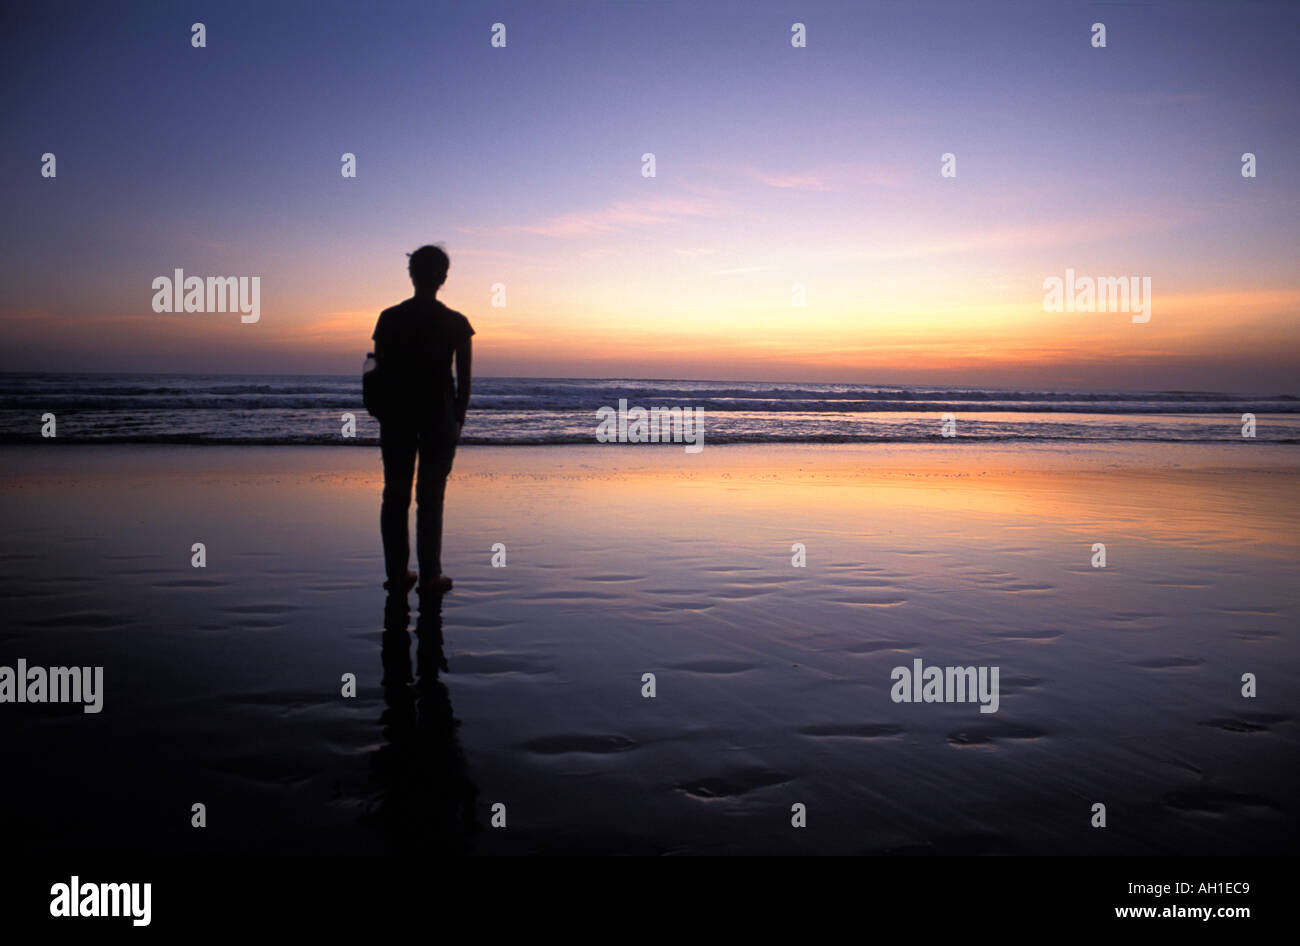 Standing on a Balinese beach looking out at sunrise sunset Bali IndonesiaStock Photo